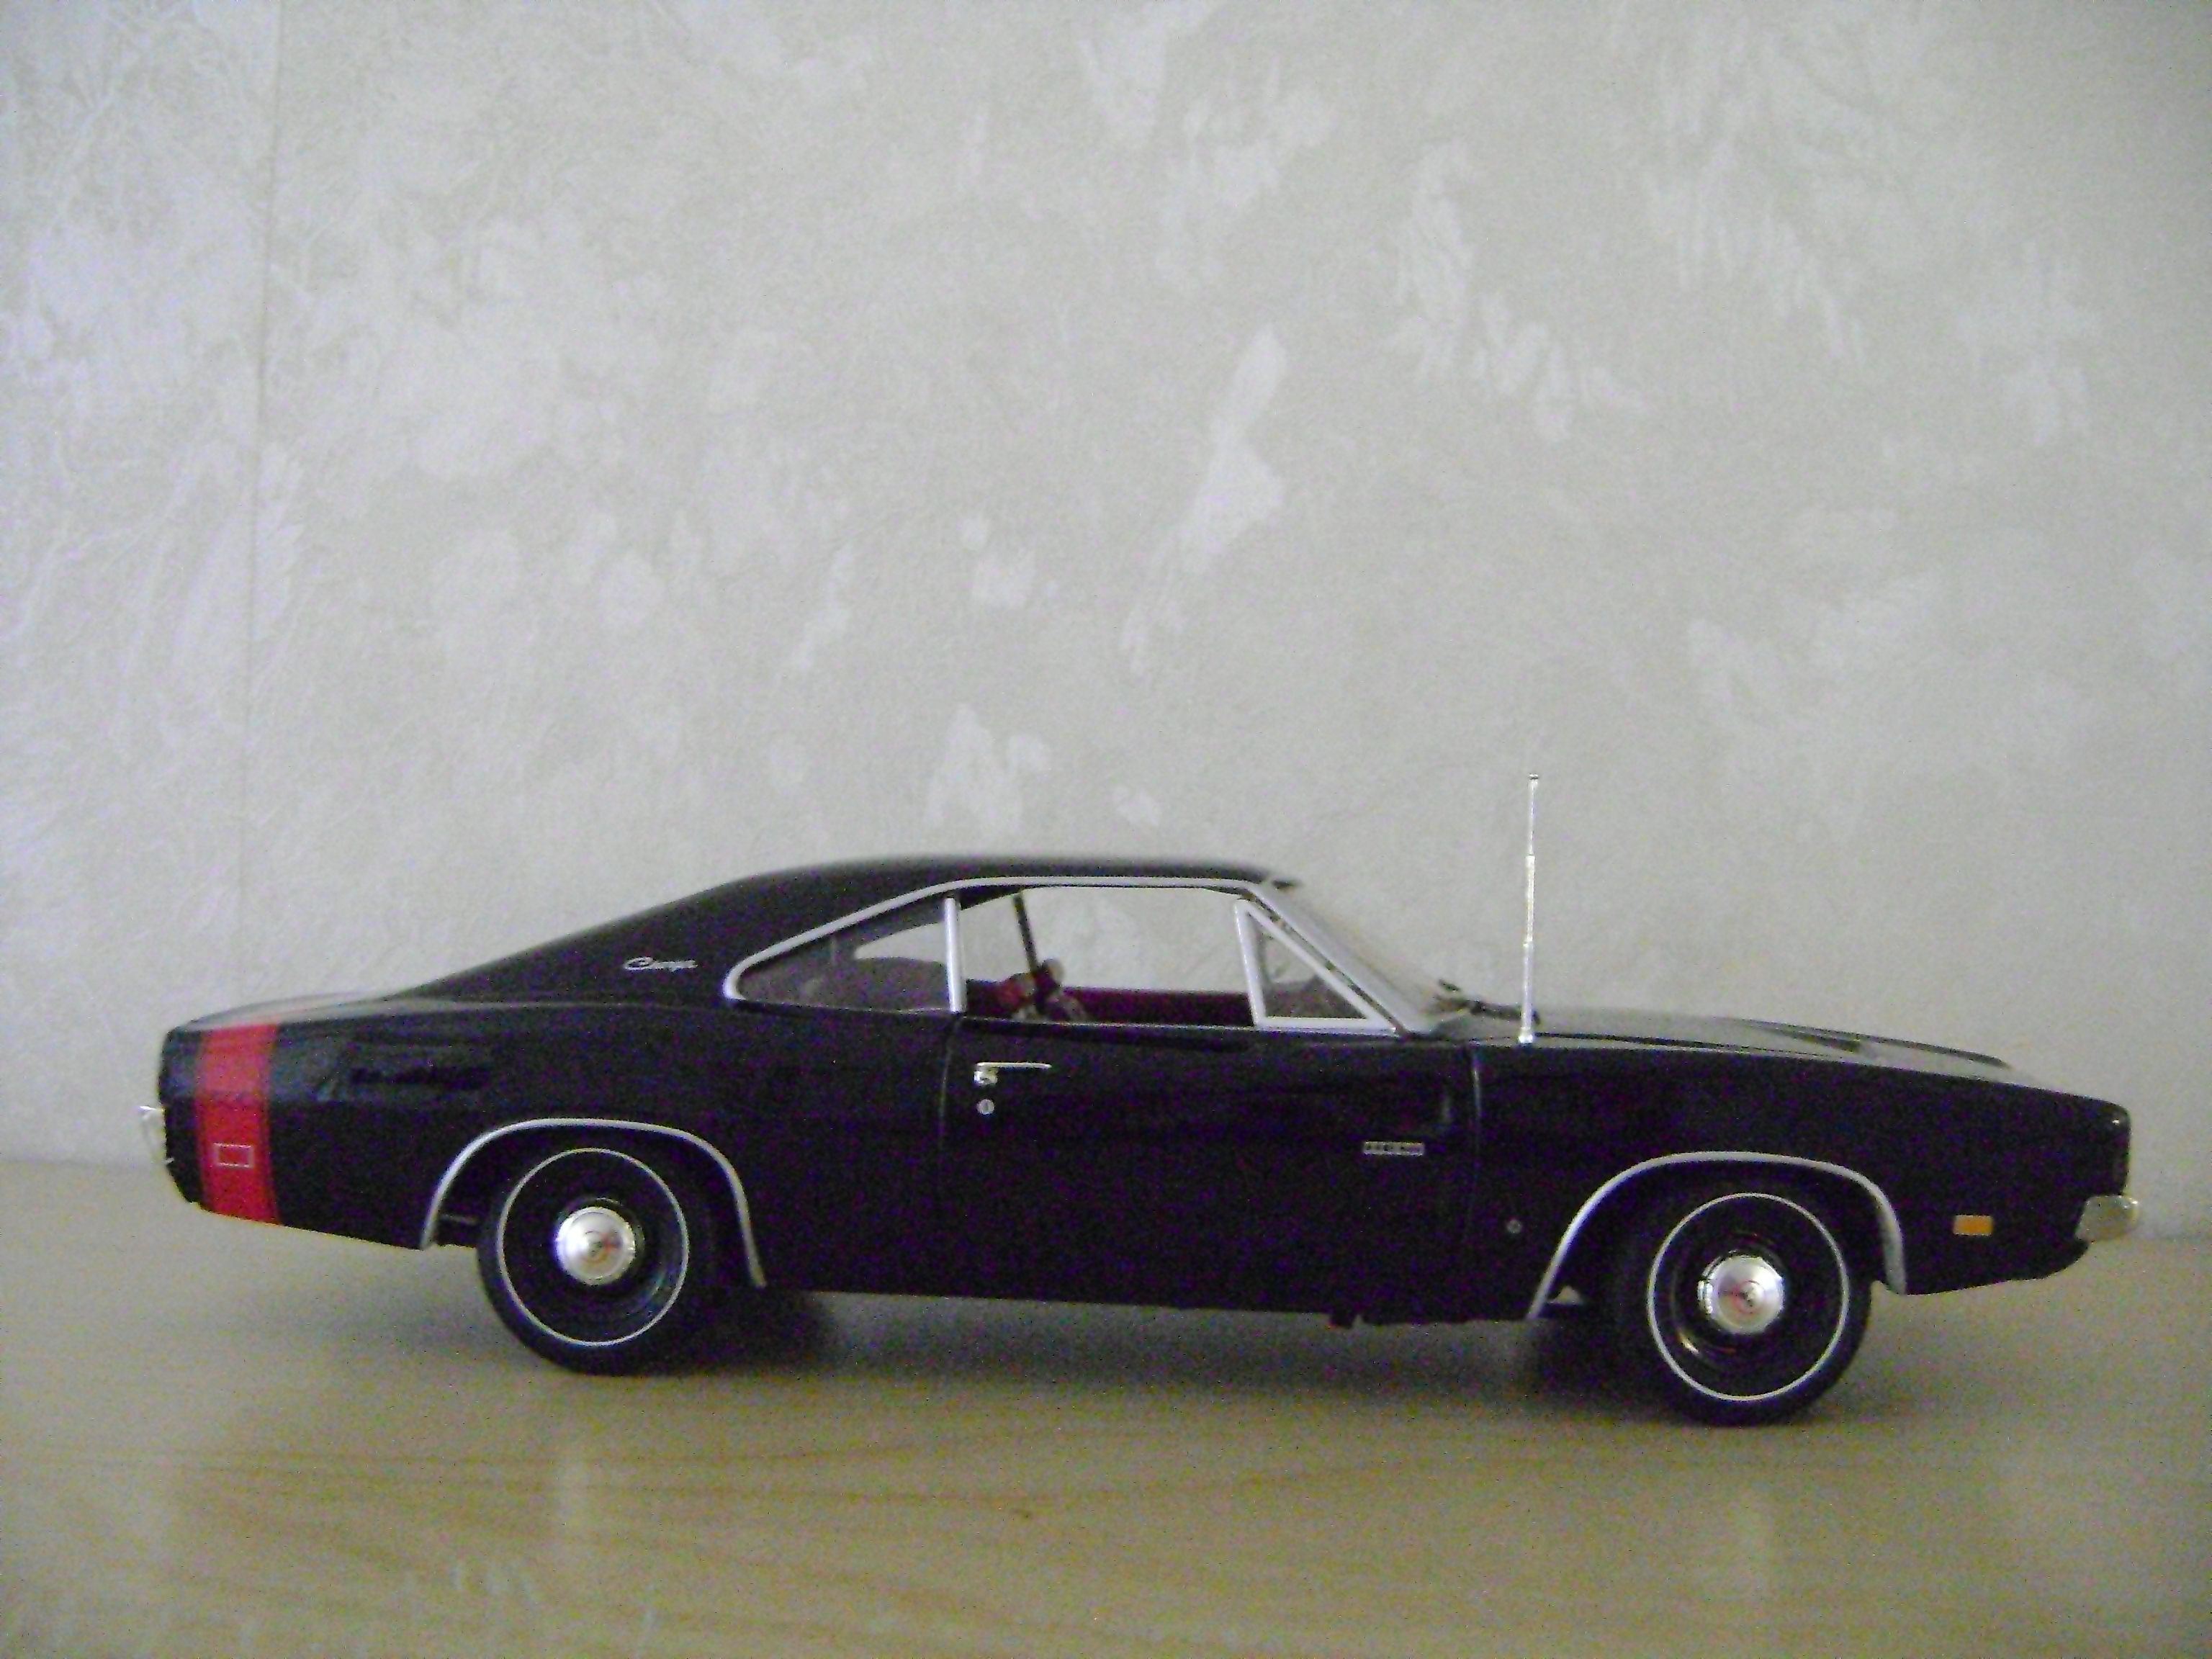 jefcharger 1969 Dodge Charger 15314020